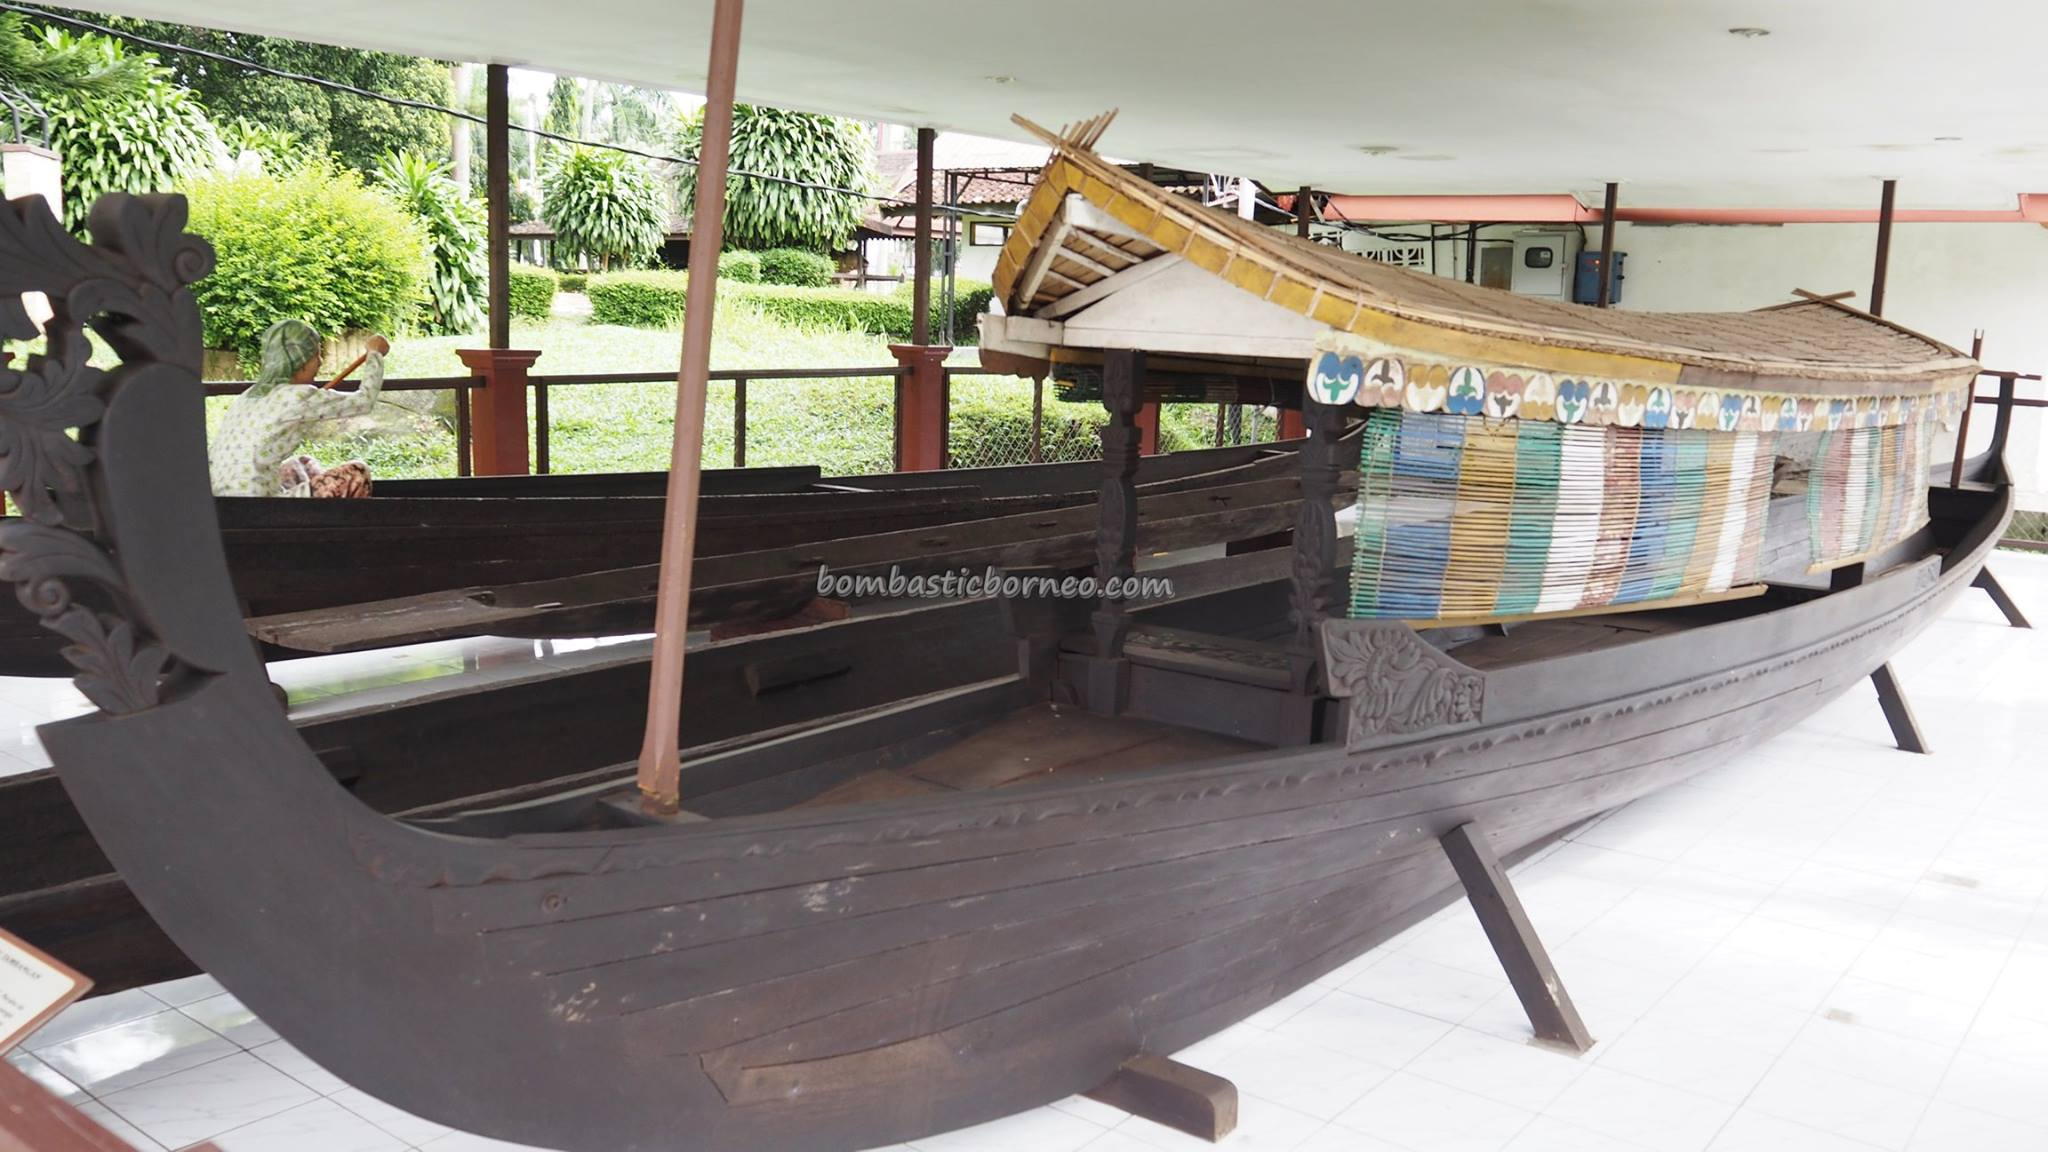 Lambung Mangkurat Muzium, ancient, antique, history, cultural, Ethnic Banjarese, Suku Banjar, native, Kota Banjarbaru, Obyek wisata, Tourism, tourist attraction, traditional, backpackers, 南加里曼丹博物馆